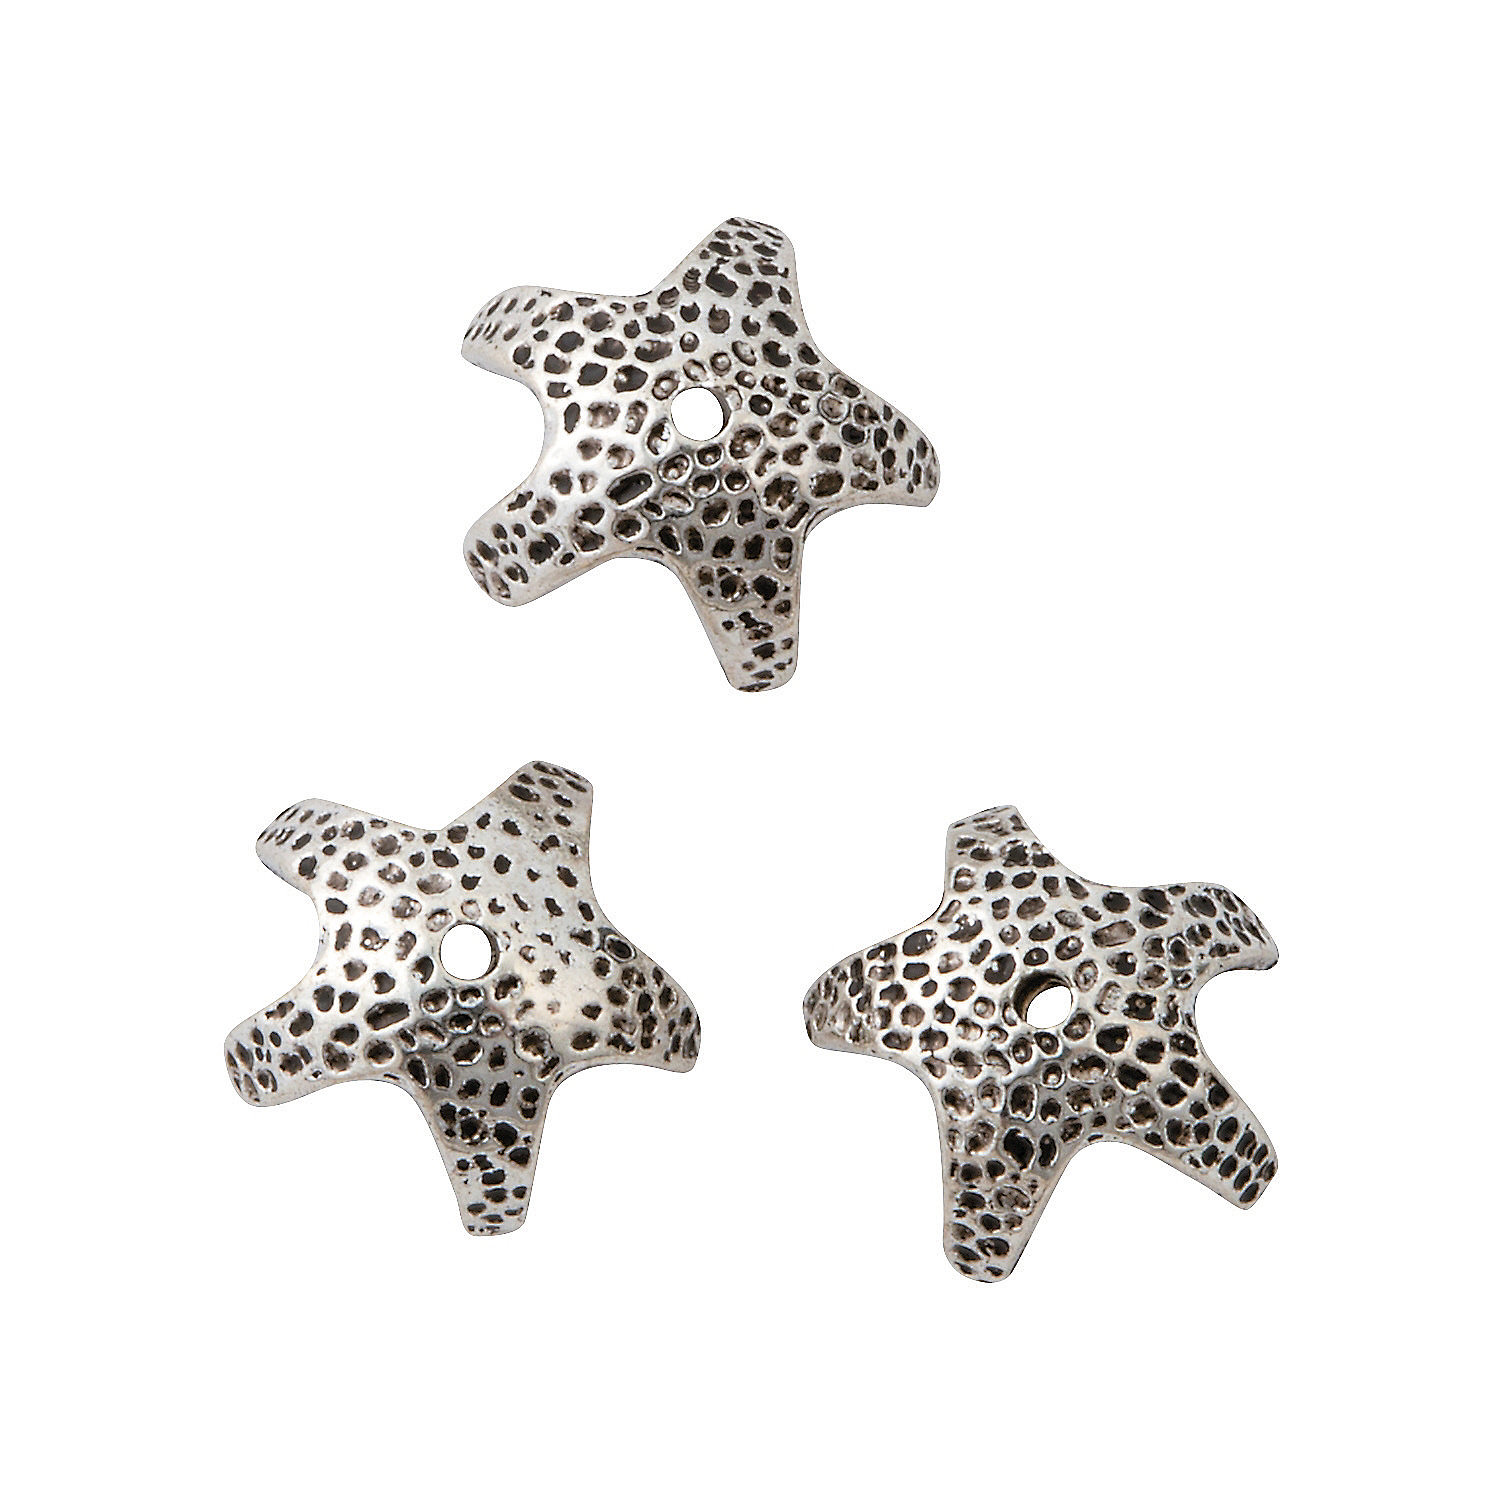 IN-13728349 Starfish Bead Caps